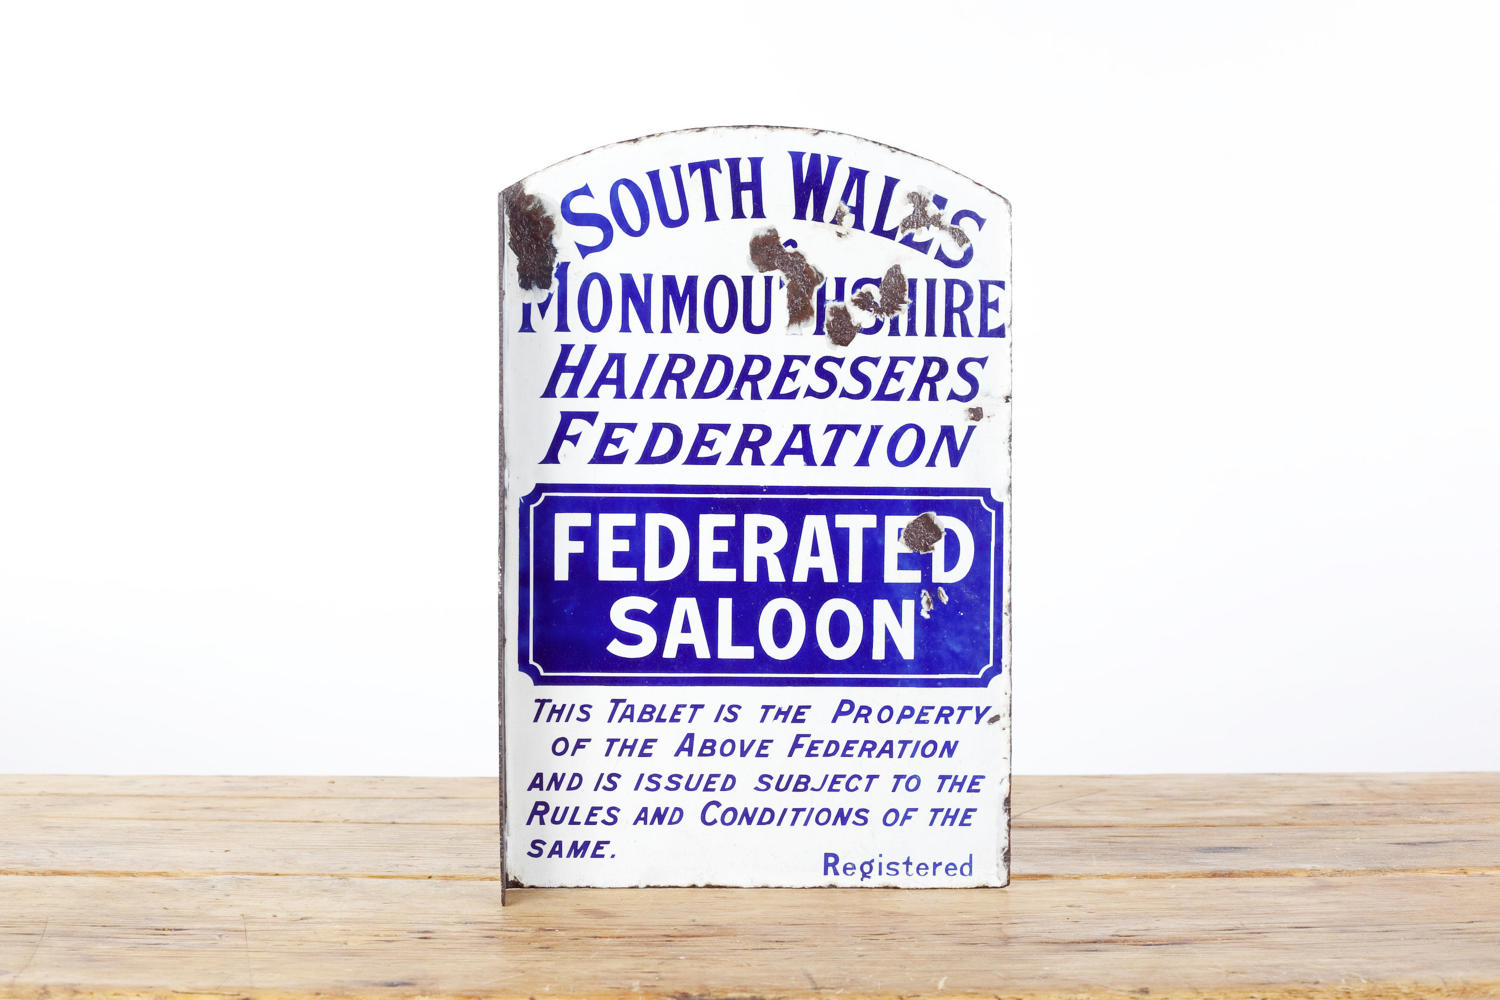 South Wales Hairdressers Federation enamel advertising sign